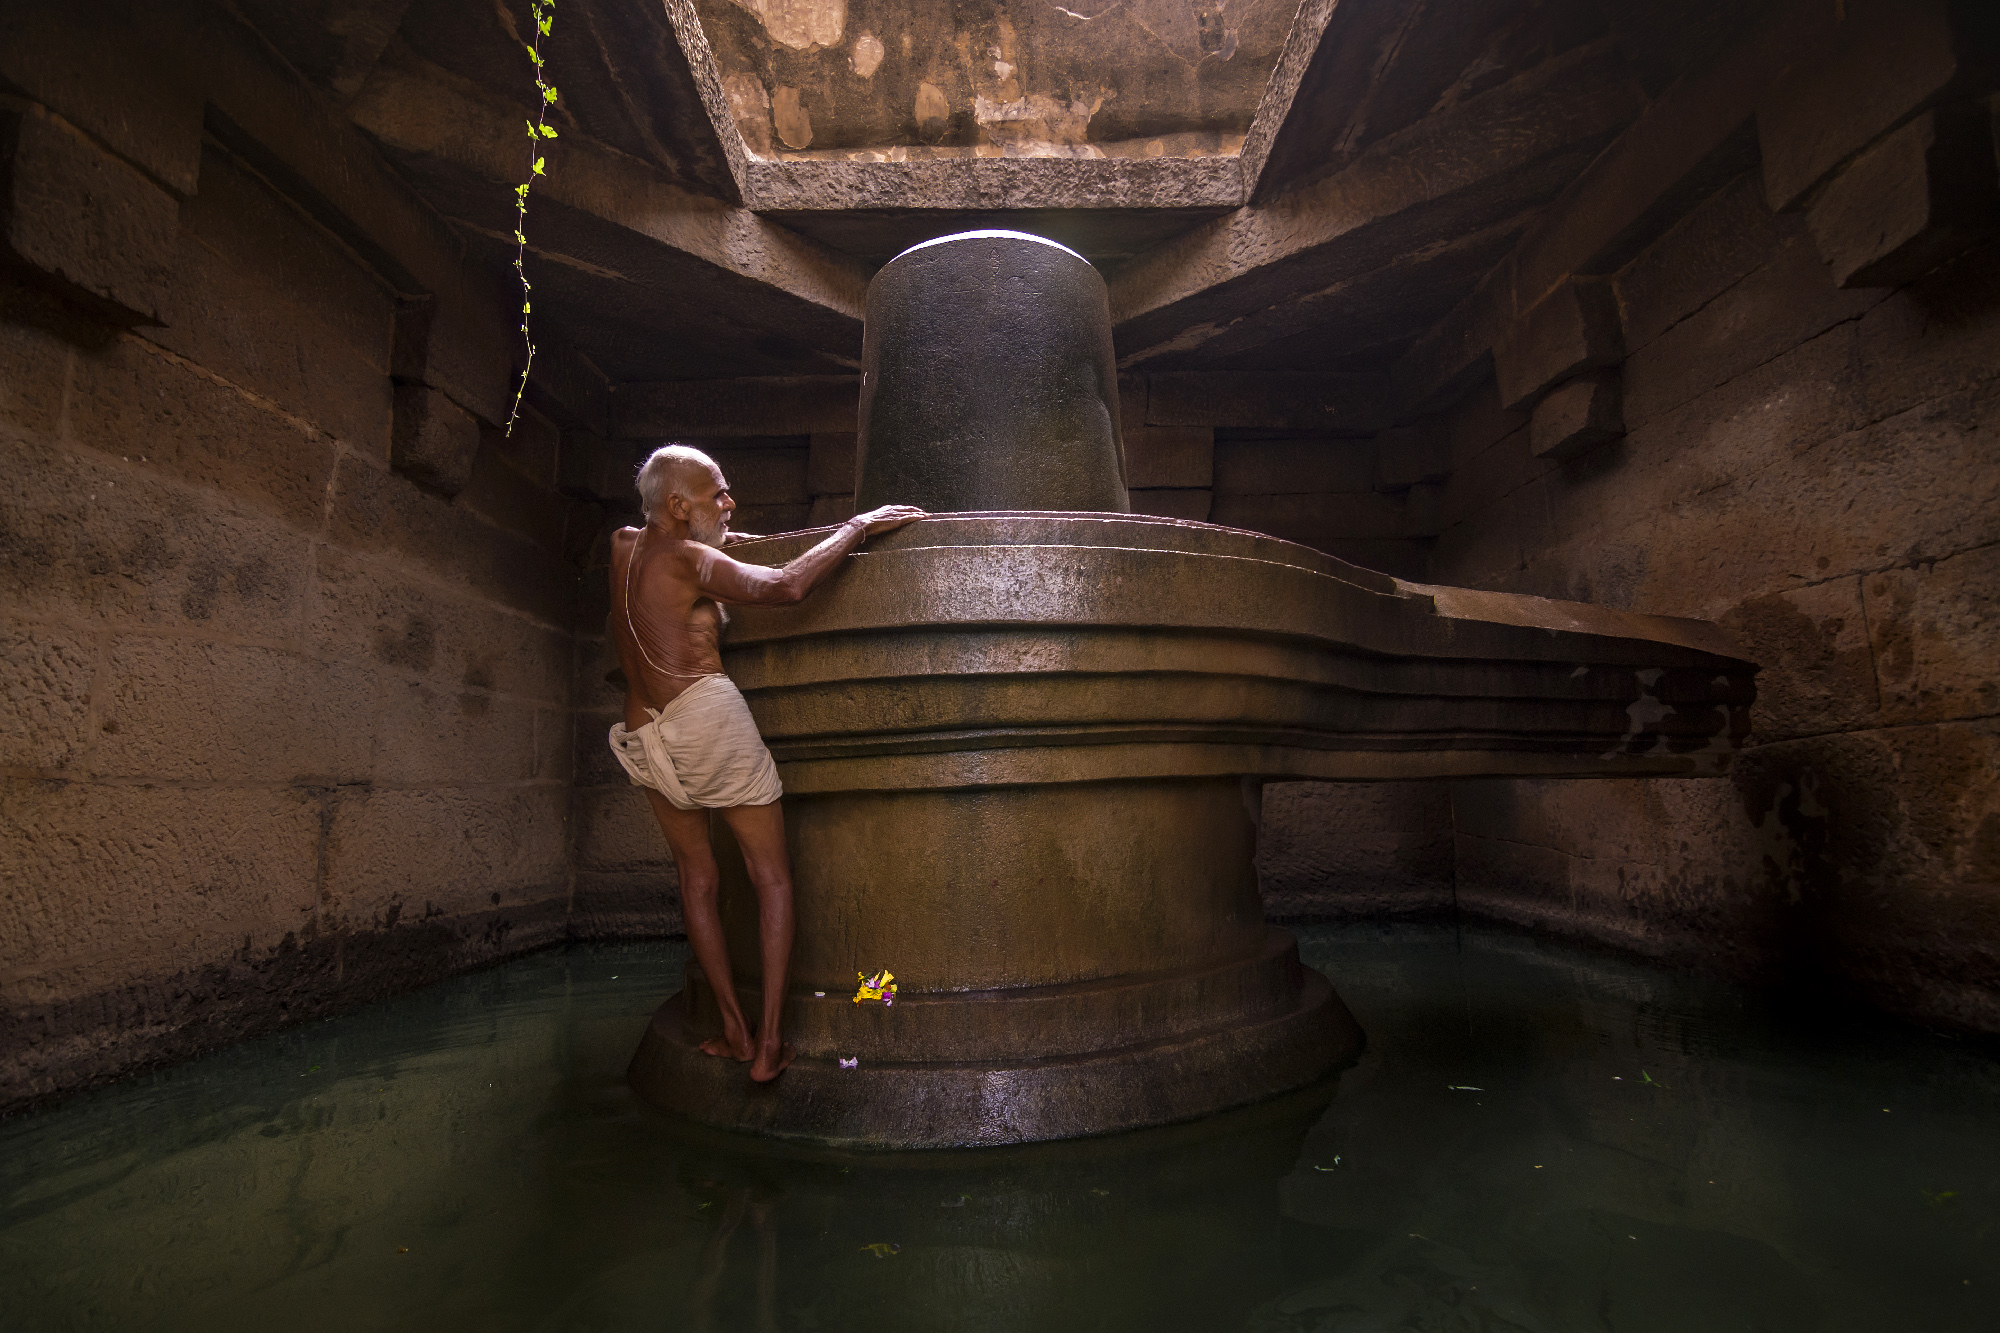 While travelling to hampi I click this beautiful story telling picture in badavilinga temple.  This is the only priest who perform adoration in this temple from last 65 years the priest was 85 years old he cant even walk properly but in the devotion of lord shiva he climbs up cleans the sculpture and worships there.he walk through that opaque water to reach to god and shows his love towards shiva. He presents the true example of love towards his religion & inspire many of us ,   for me its a real inspiration for all.